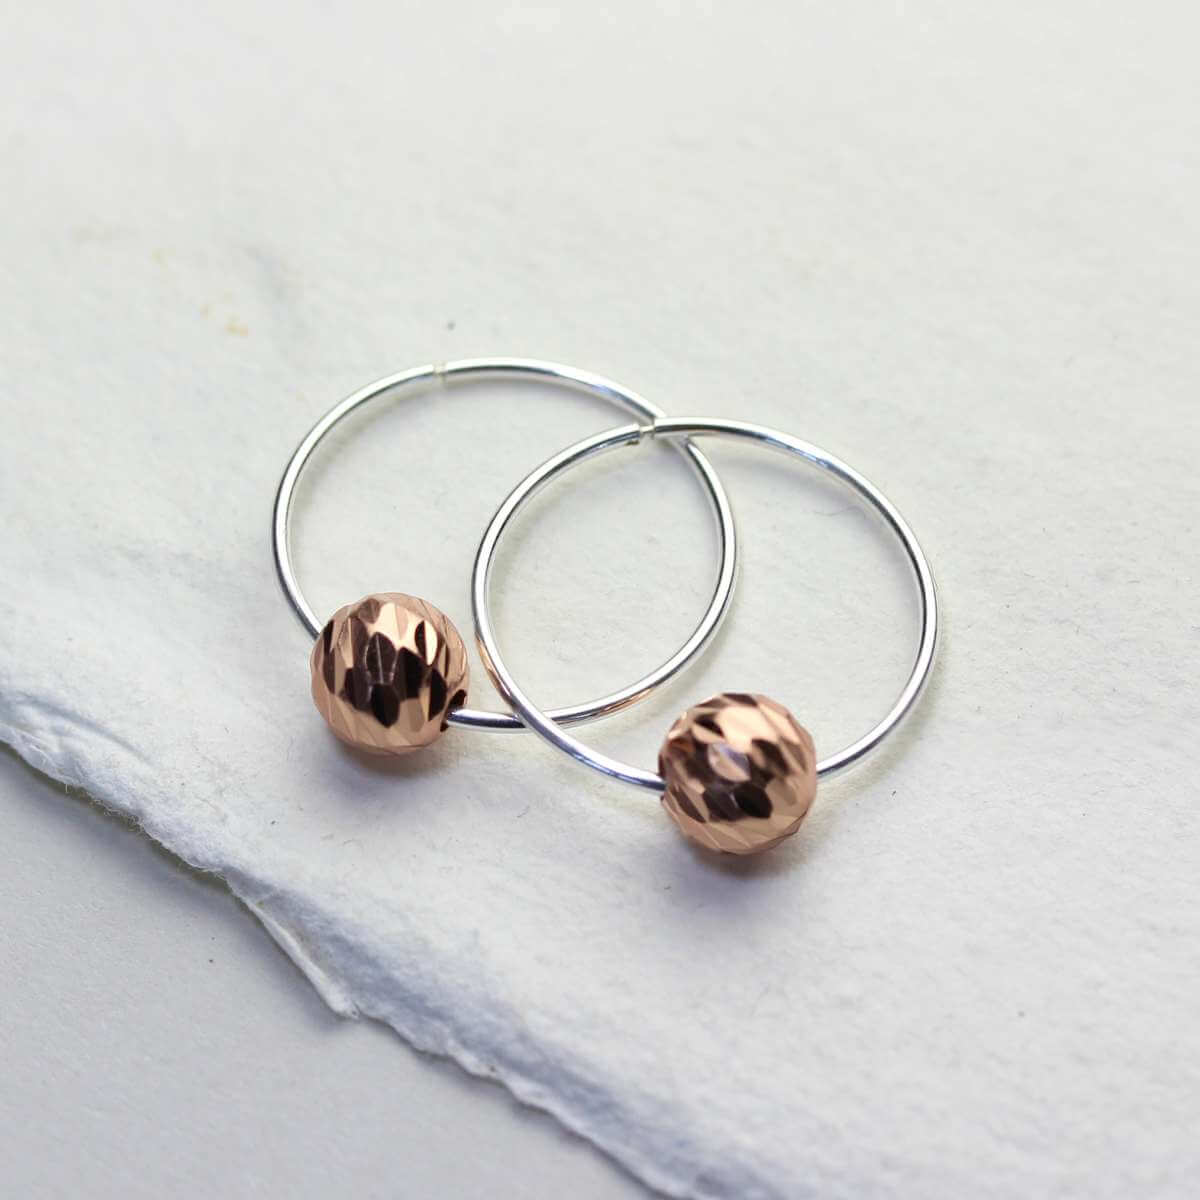 Sterling Silver 18mm Hoop Earrings with Rose Gold Plated Diamond Cut Ball Beads